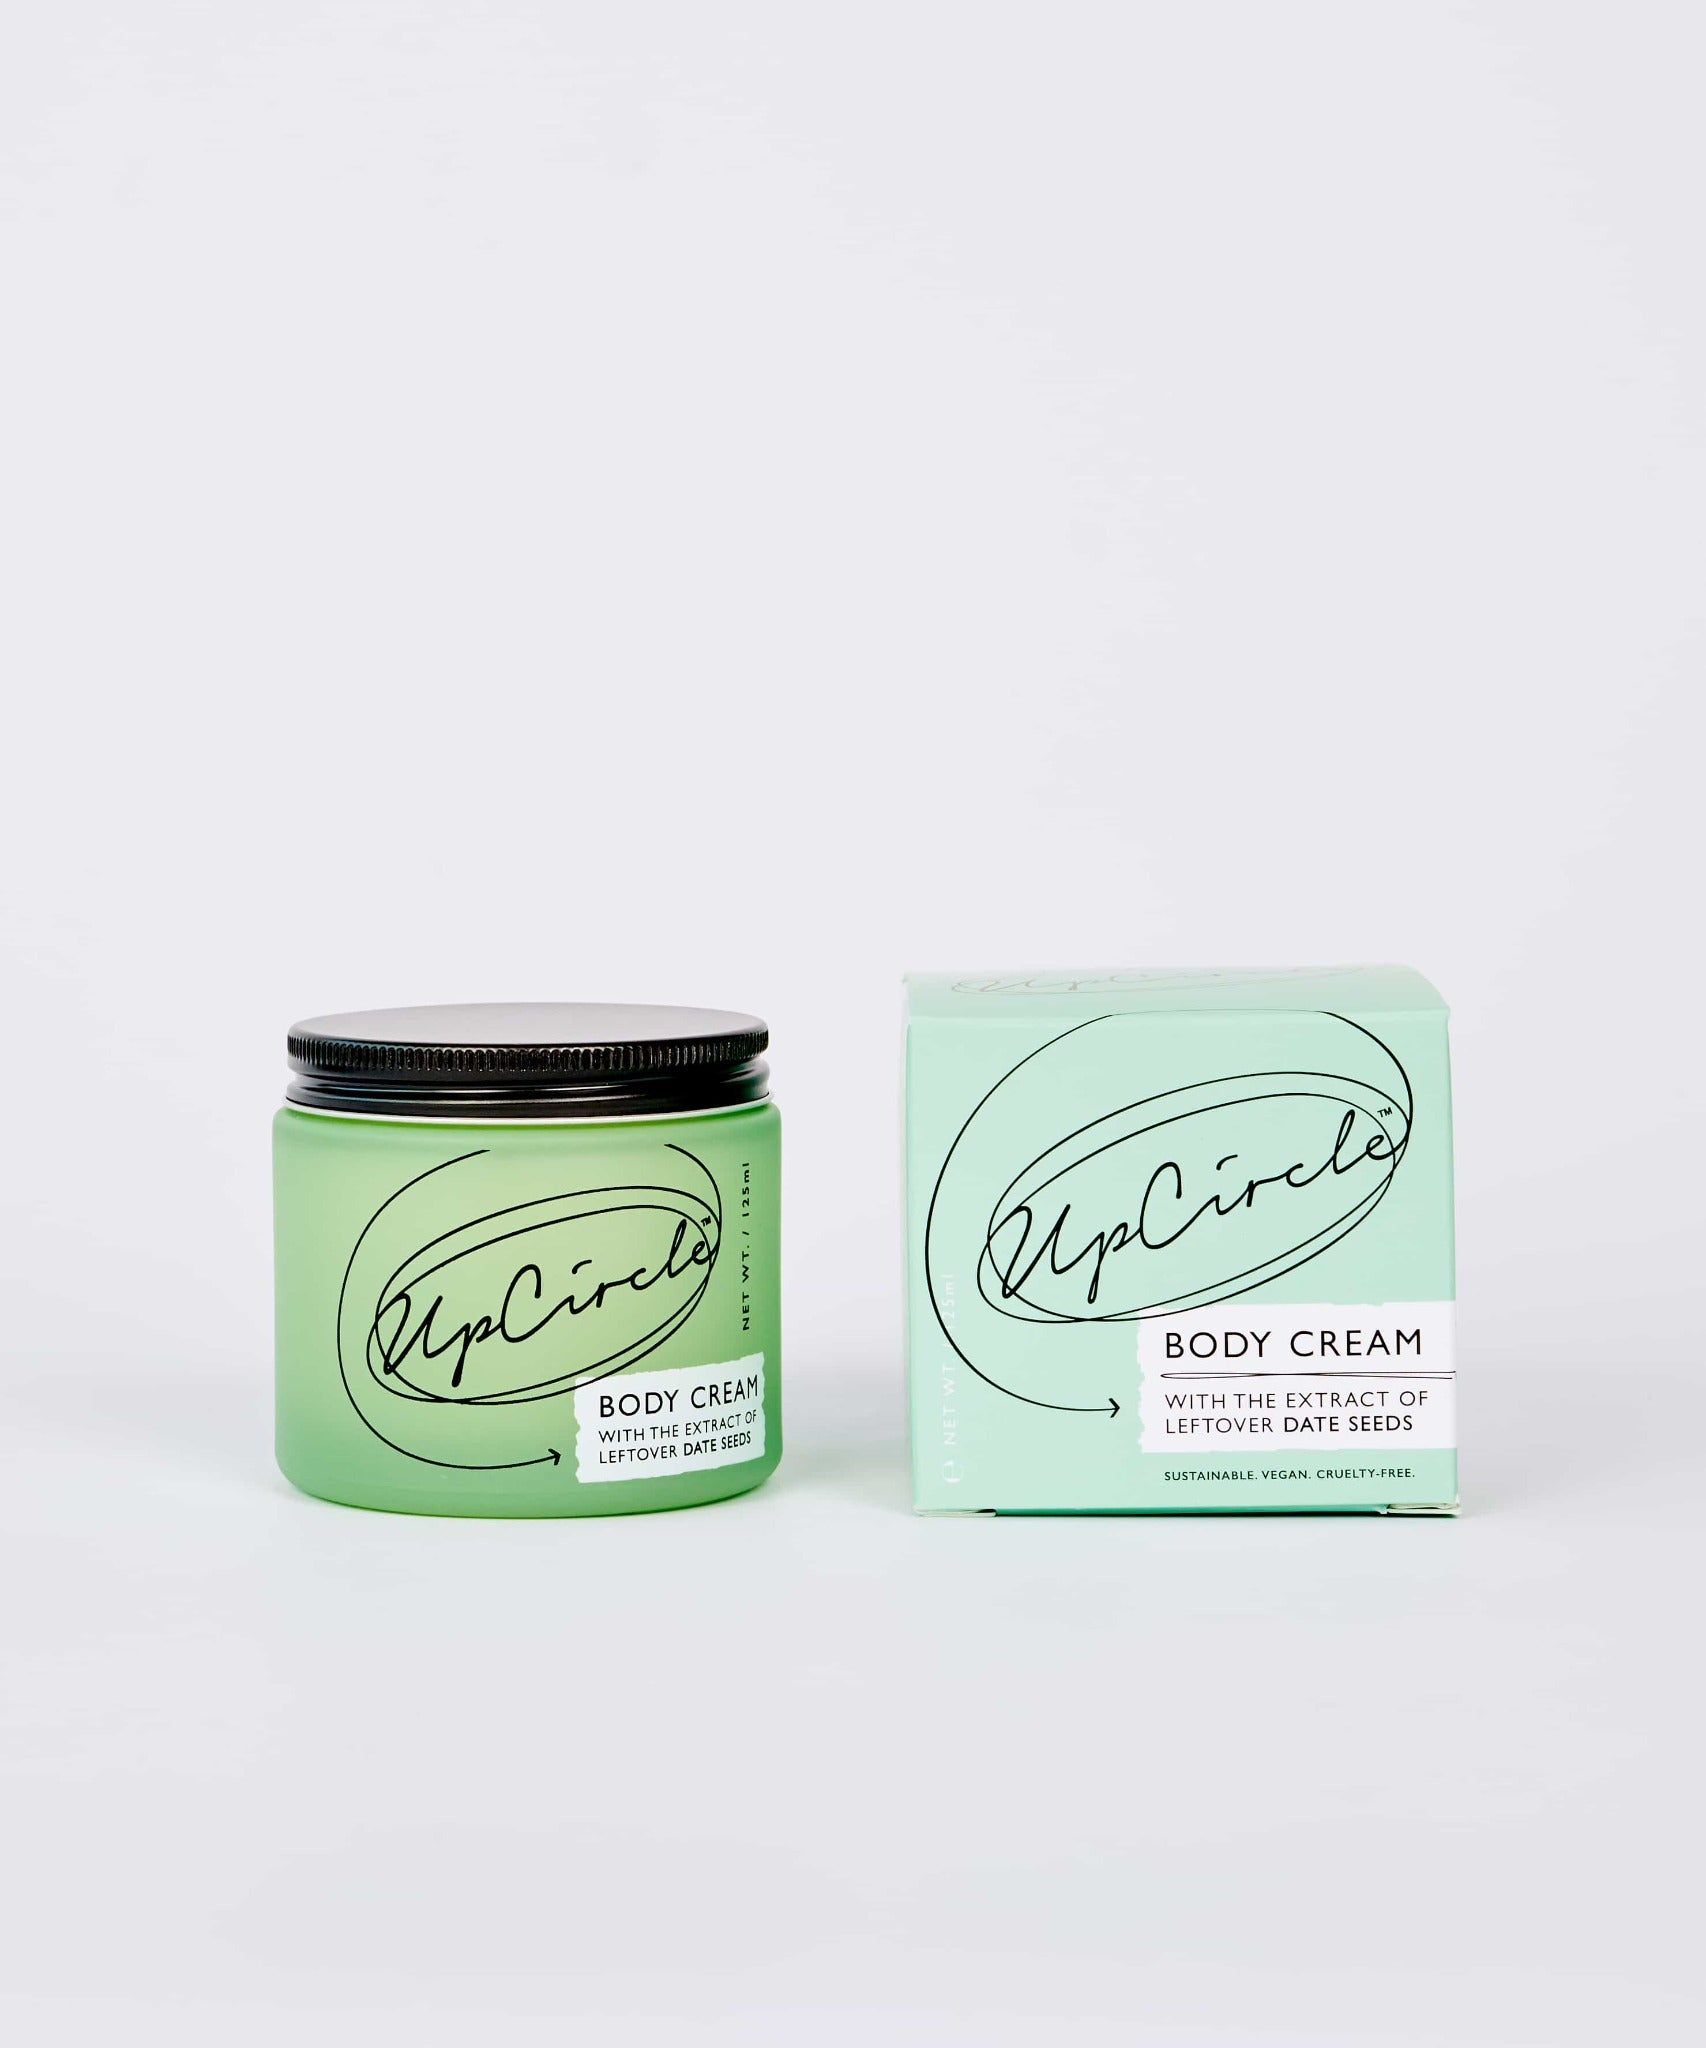 UpCircle Body Cream, glass jar next to outer cardboard box